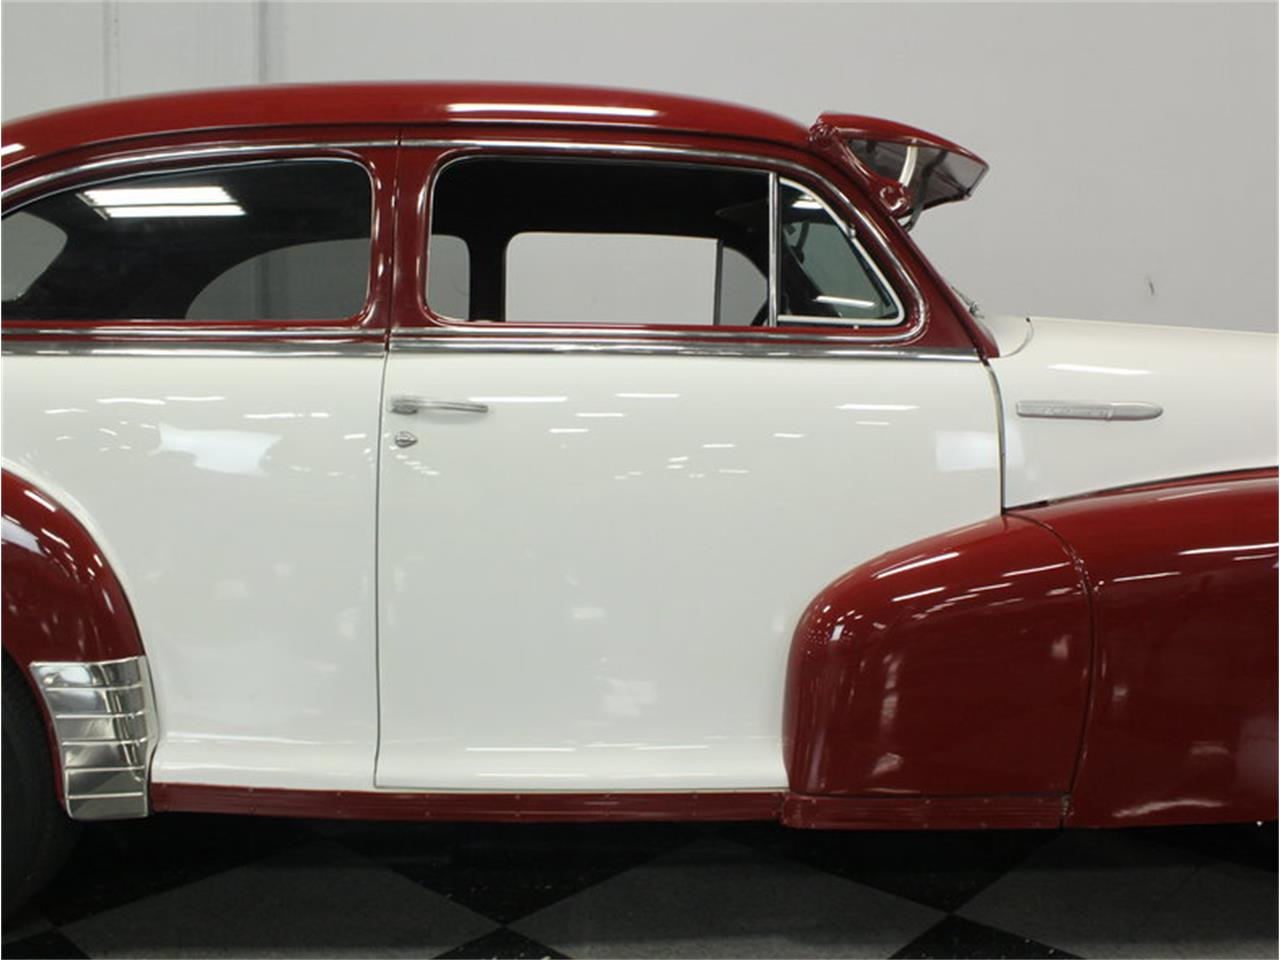 Large Picture of 1947 Chevrolet Fleetmaster located in Texas Offered by Streetside Classics - Dallas / Fort Worth - IJNK